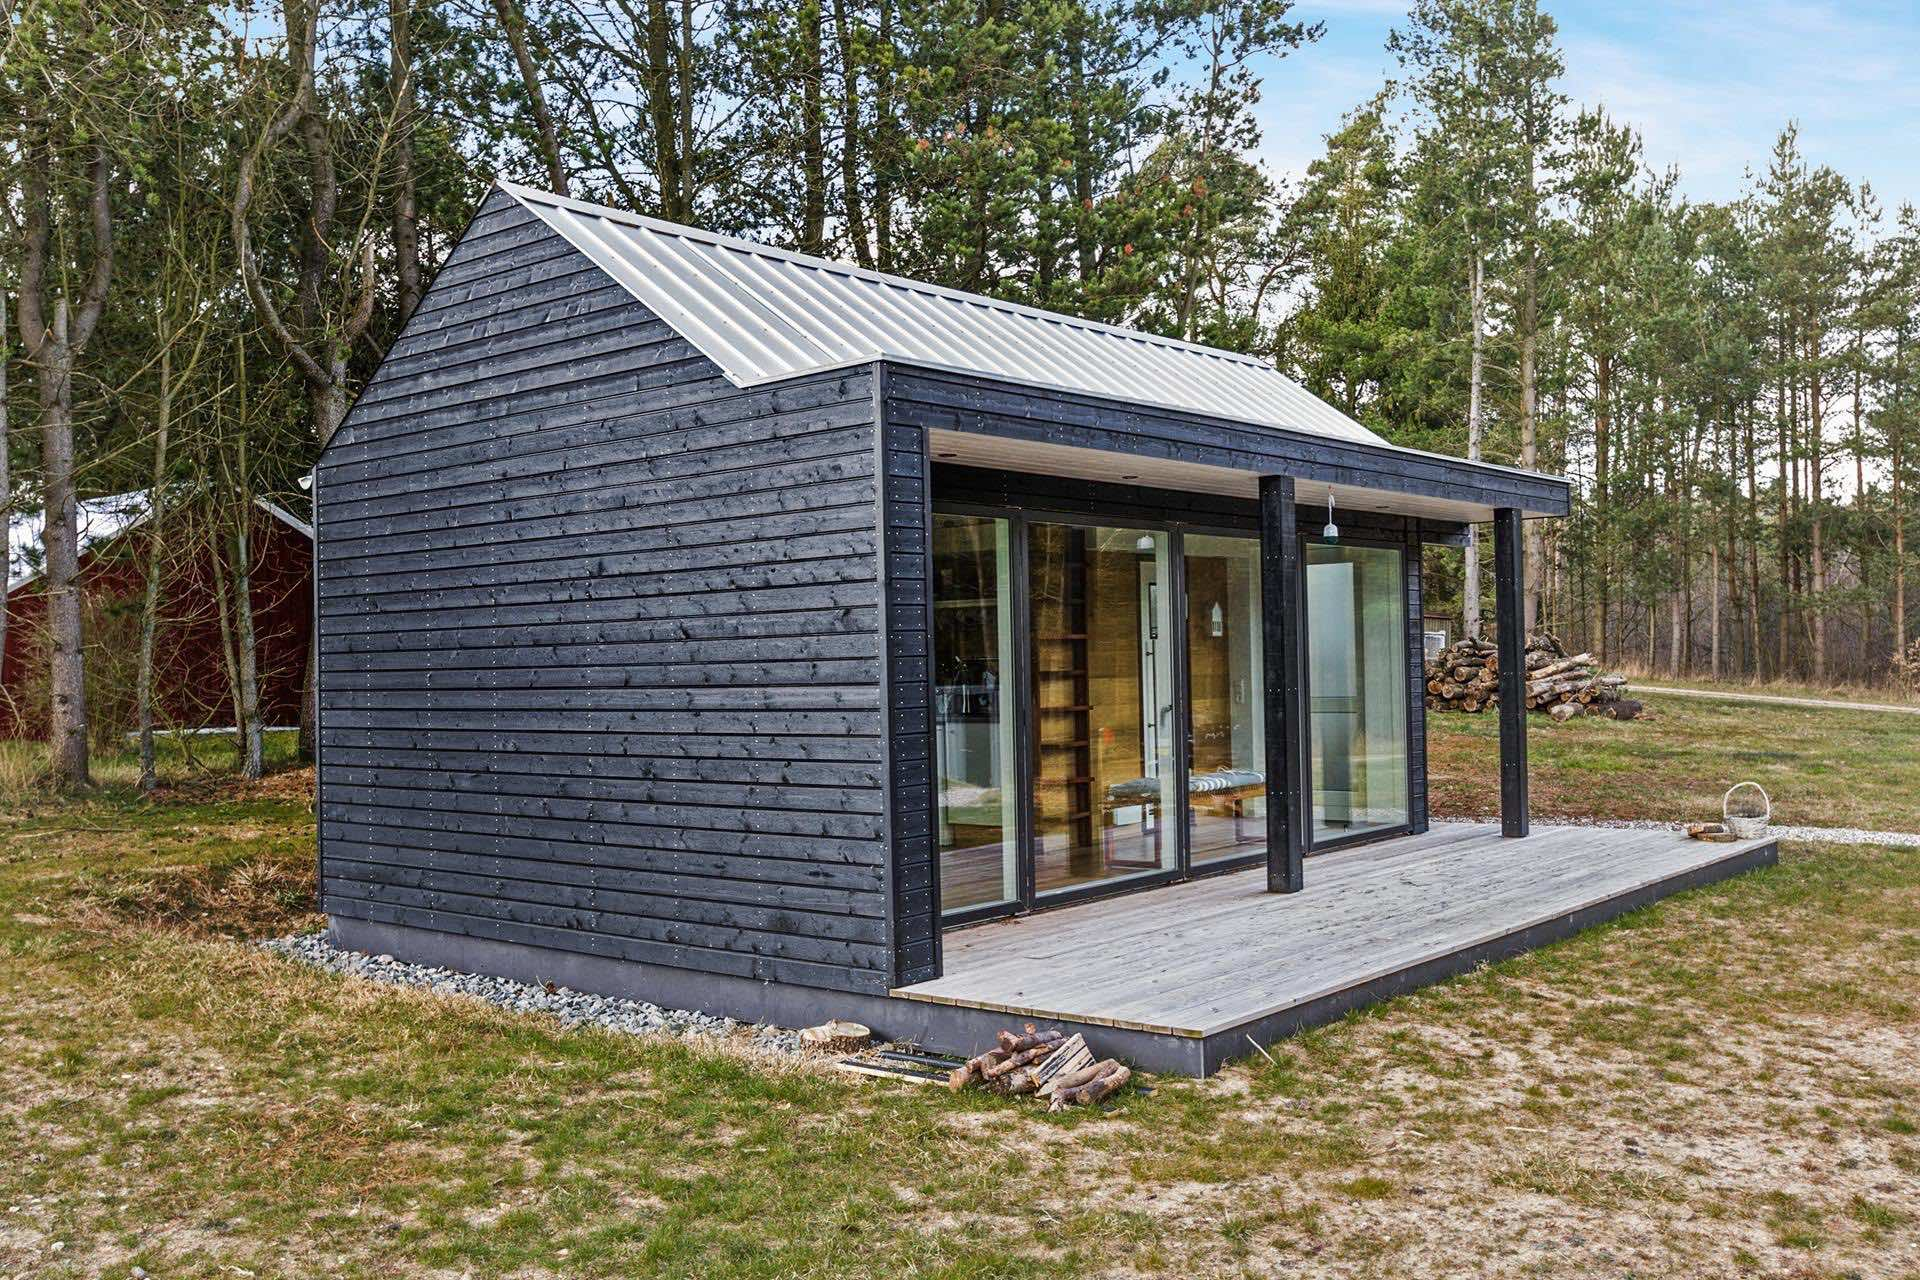 1920 1280 in scandinavian modern tiny house - Tiny House Modern